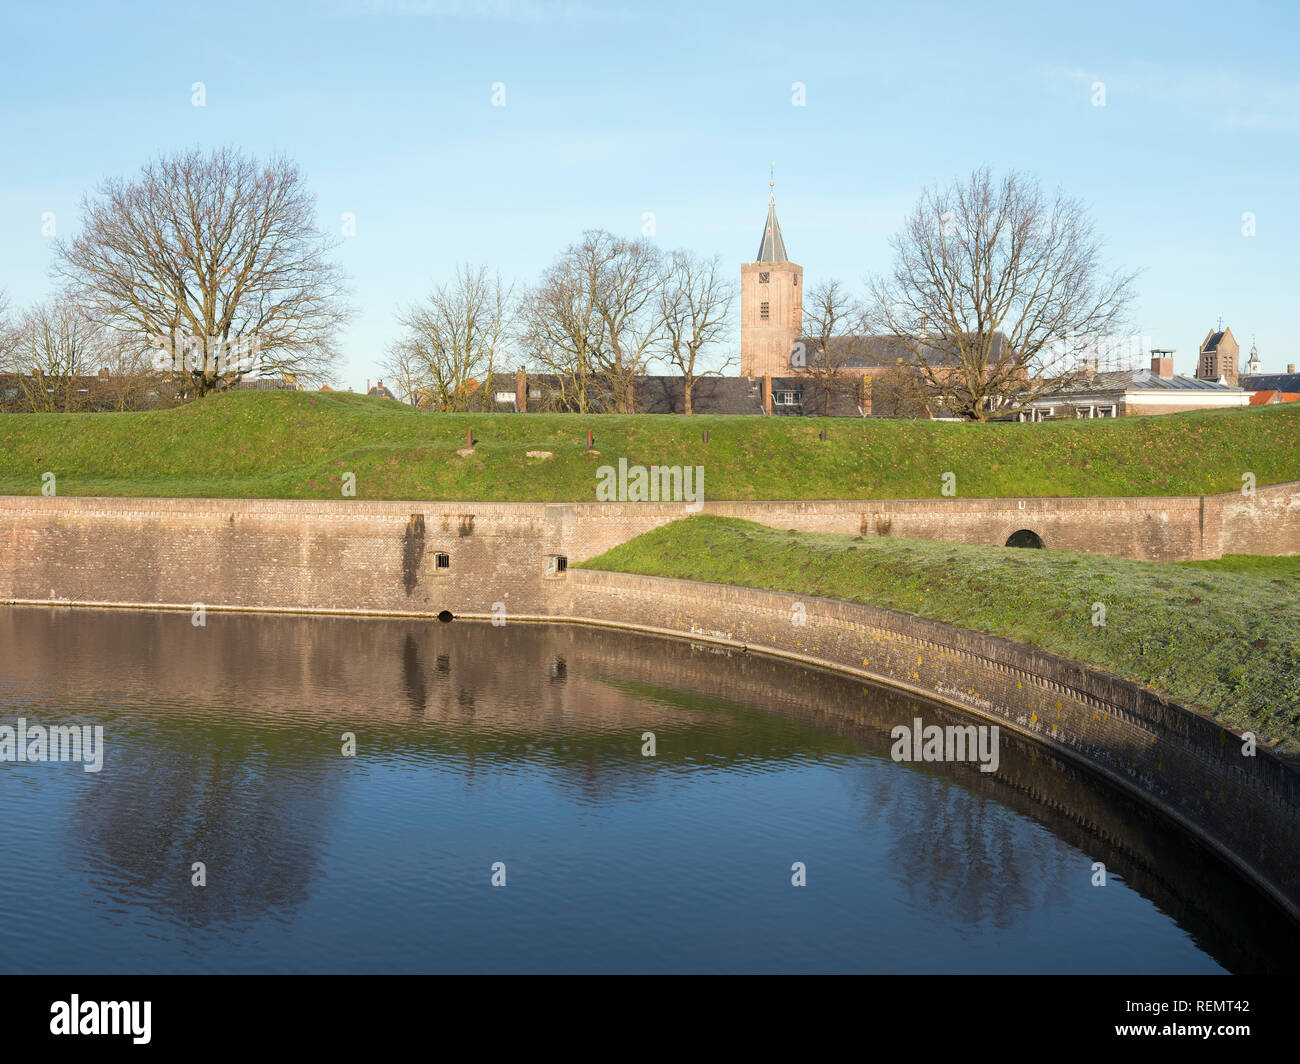 large church of naarden vesting in the netherlands seen from the fortifications around the old town - Stock Image